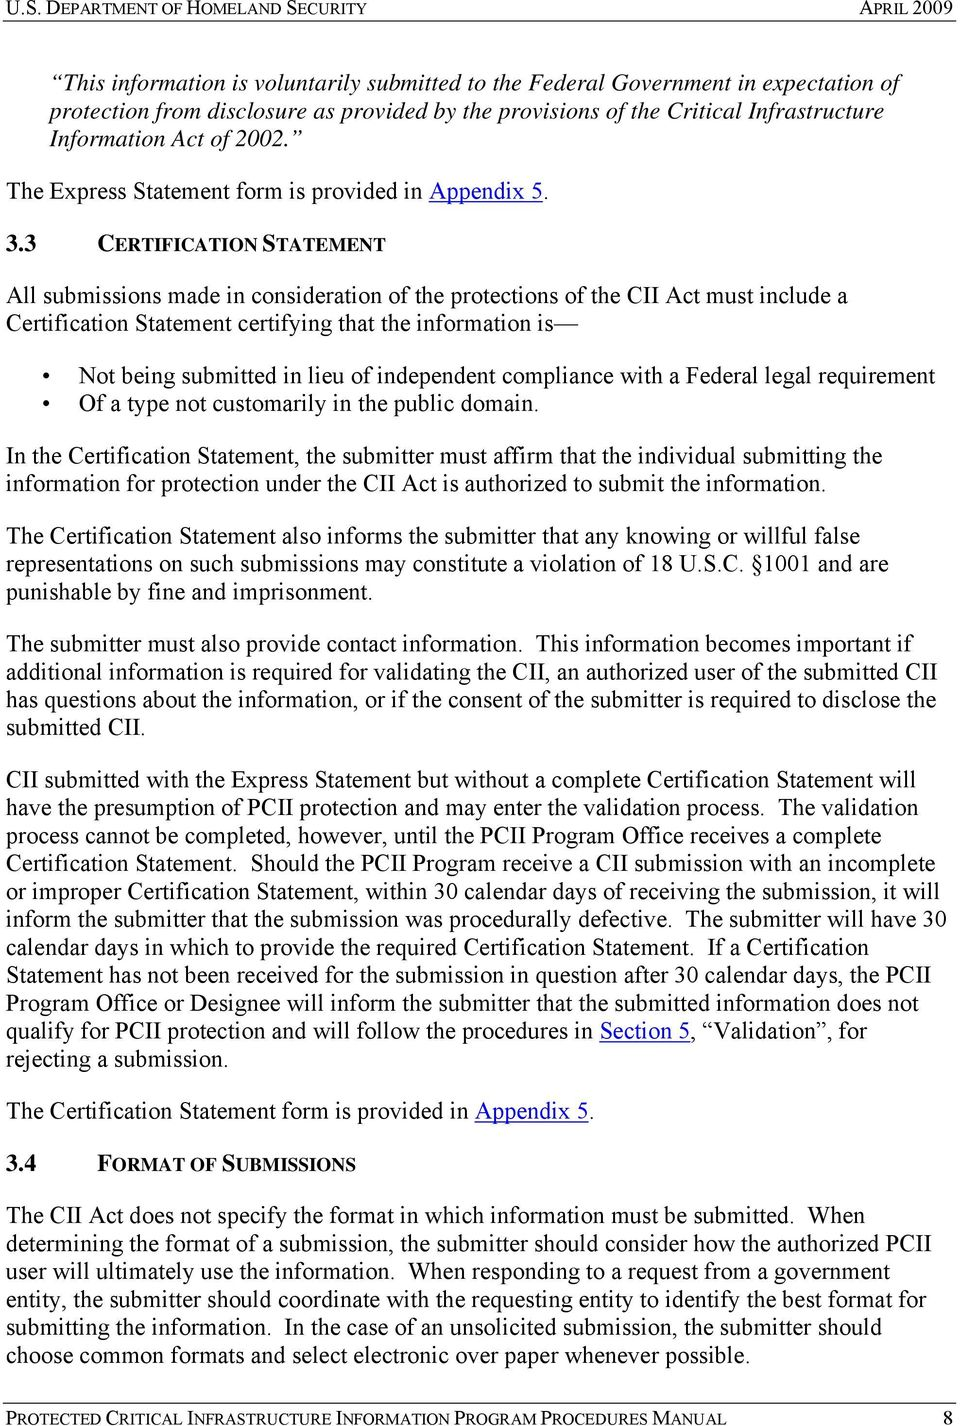 3 CERTIFICATION STATEMENT All submissions made in consideration of the protections of the CII Act must include a Certification Statement certifying that the information is Not being submitted in lieu